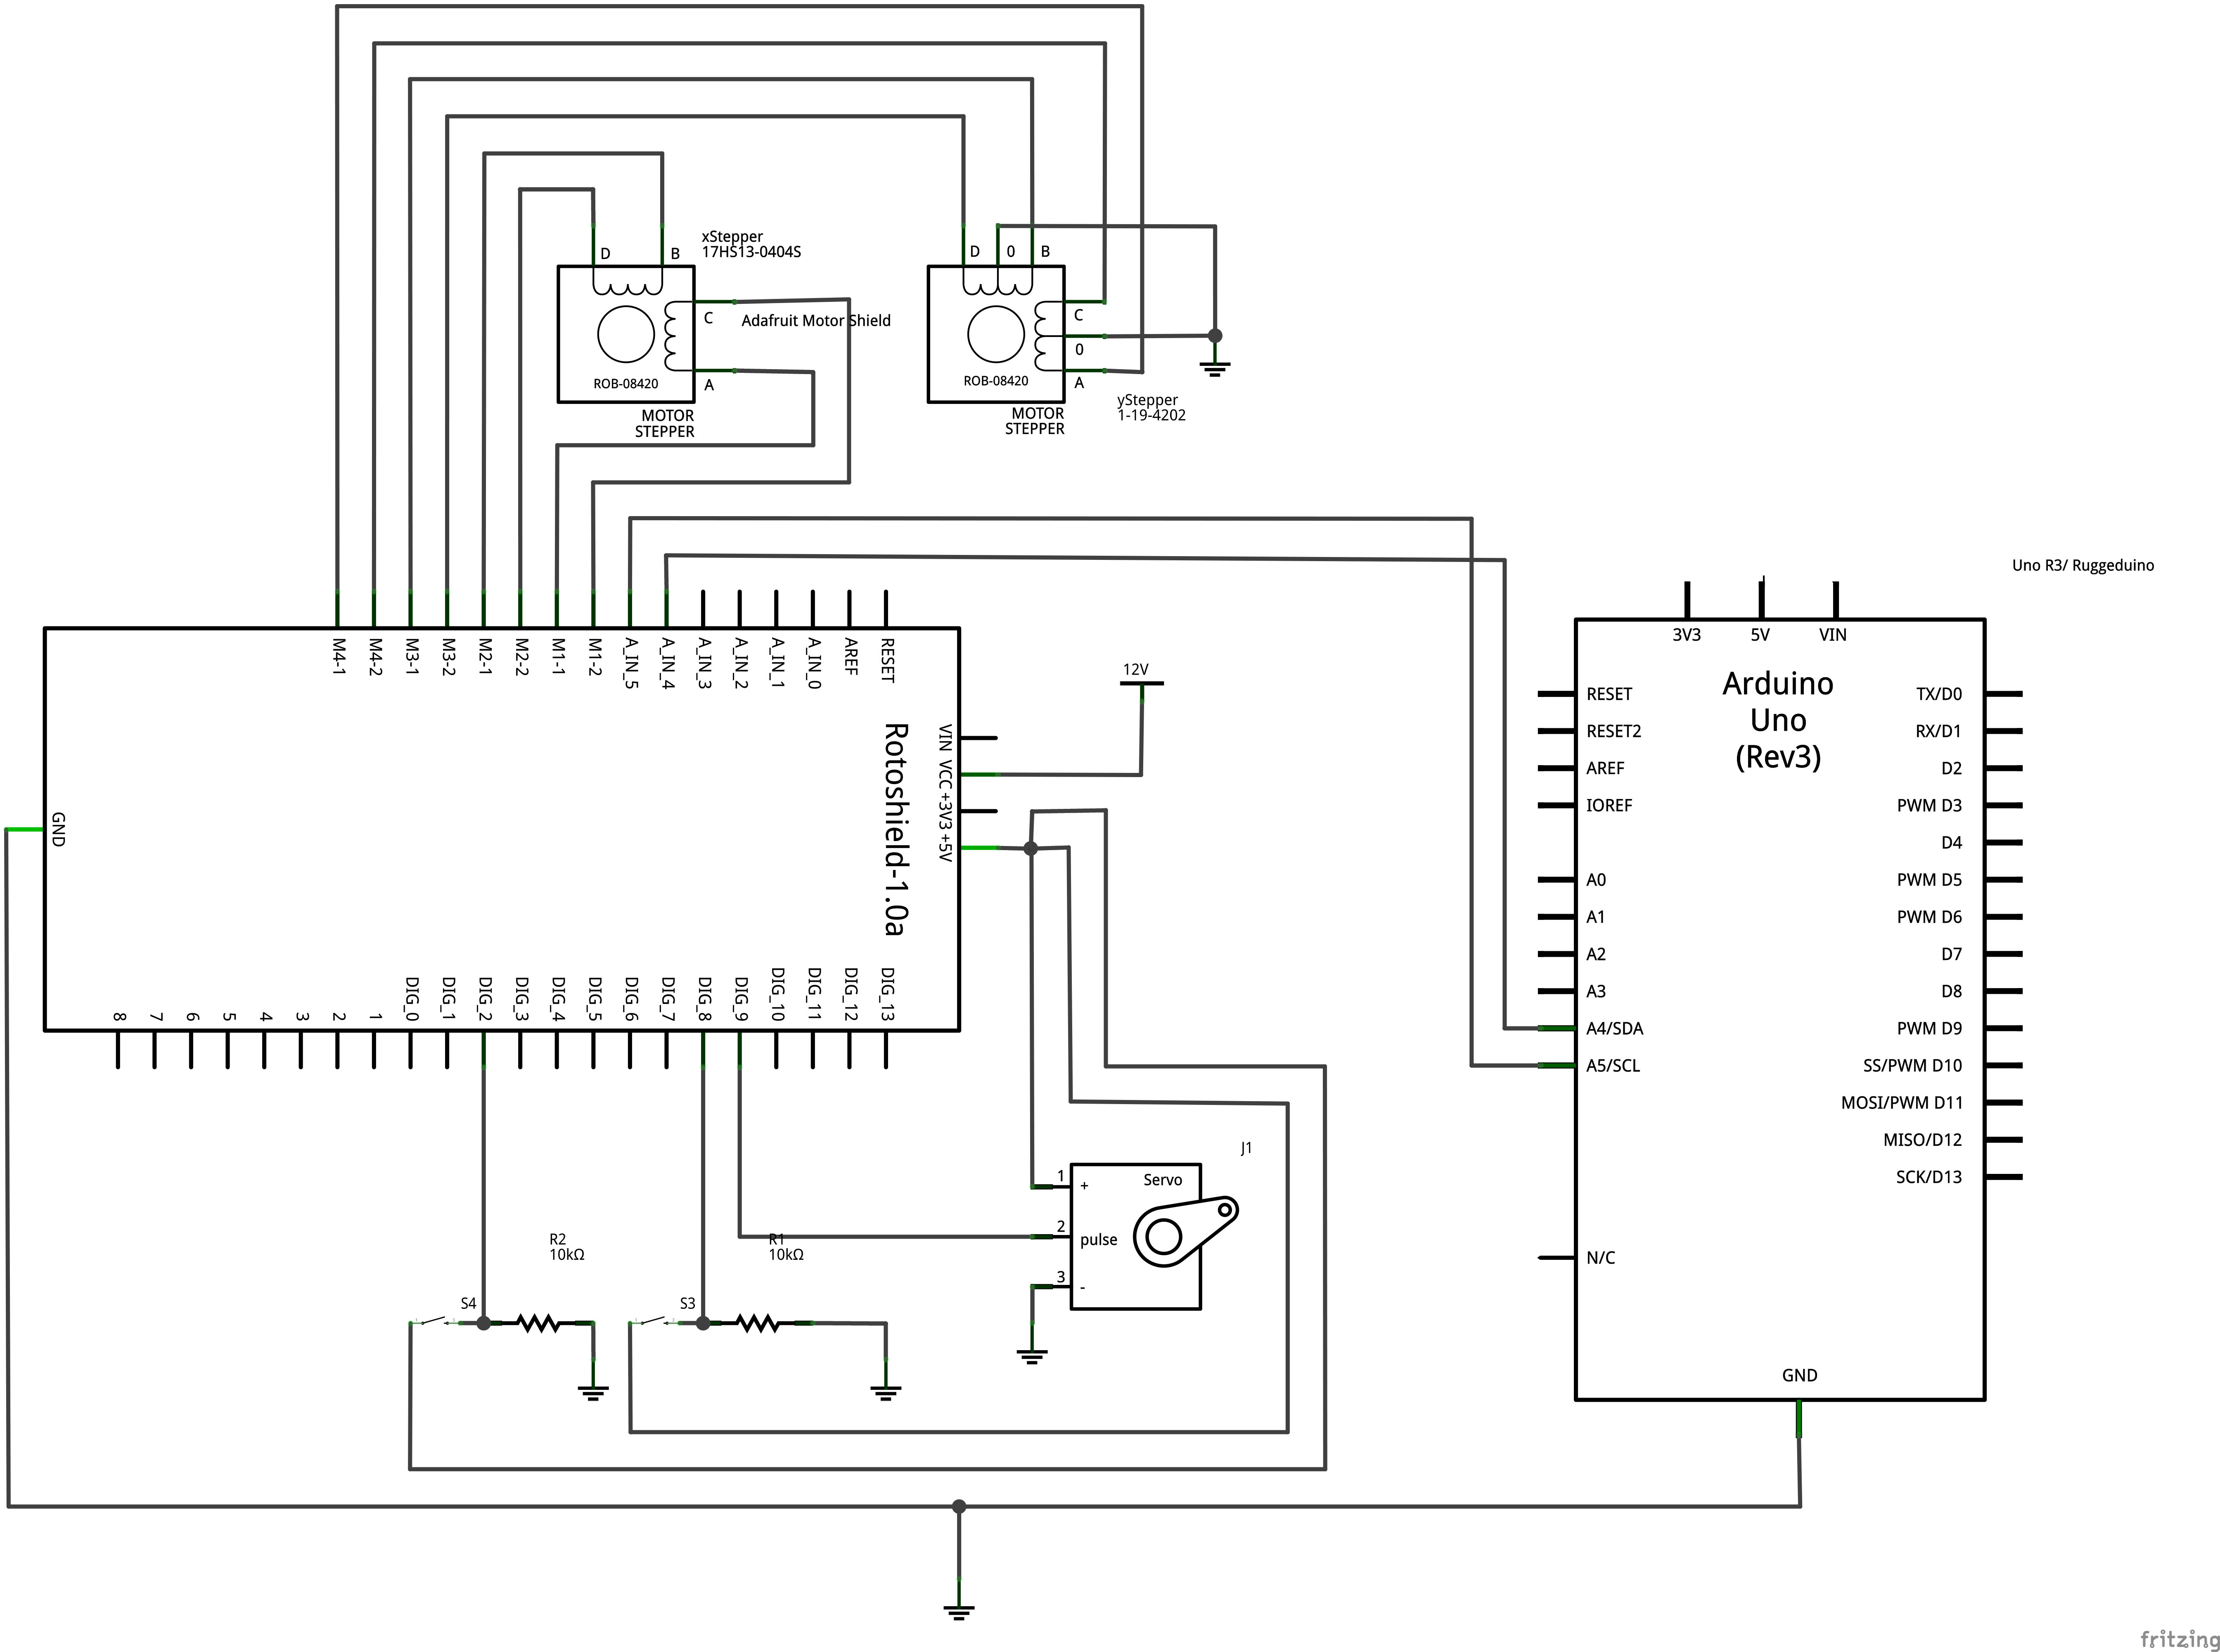 Cnc m ms electrical and software